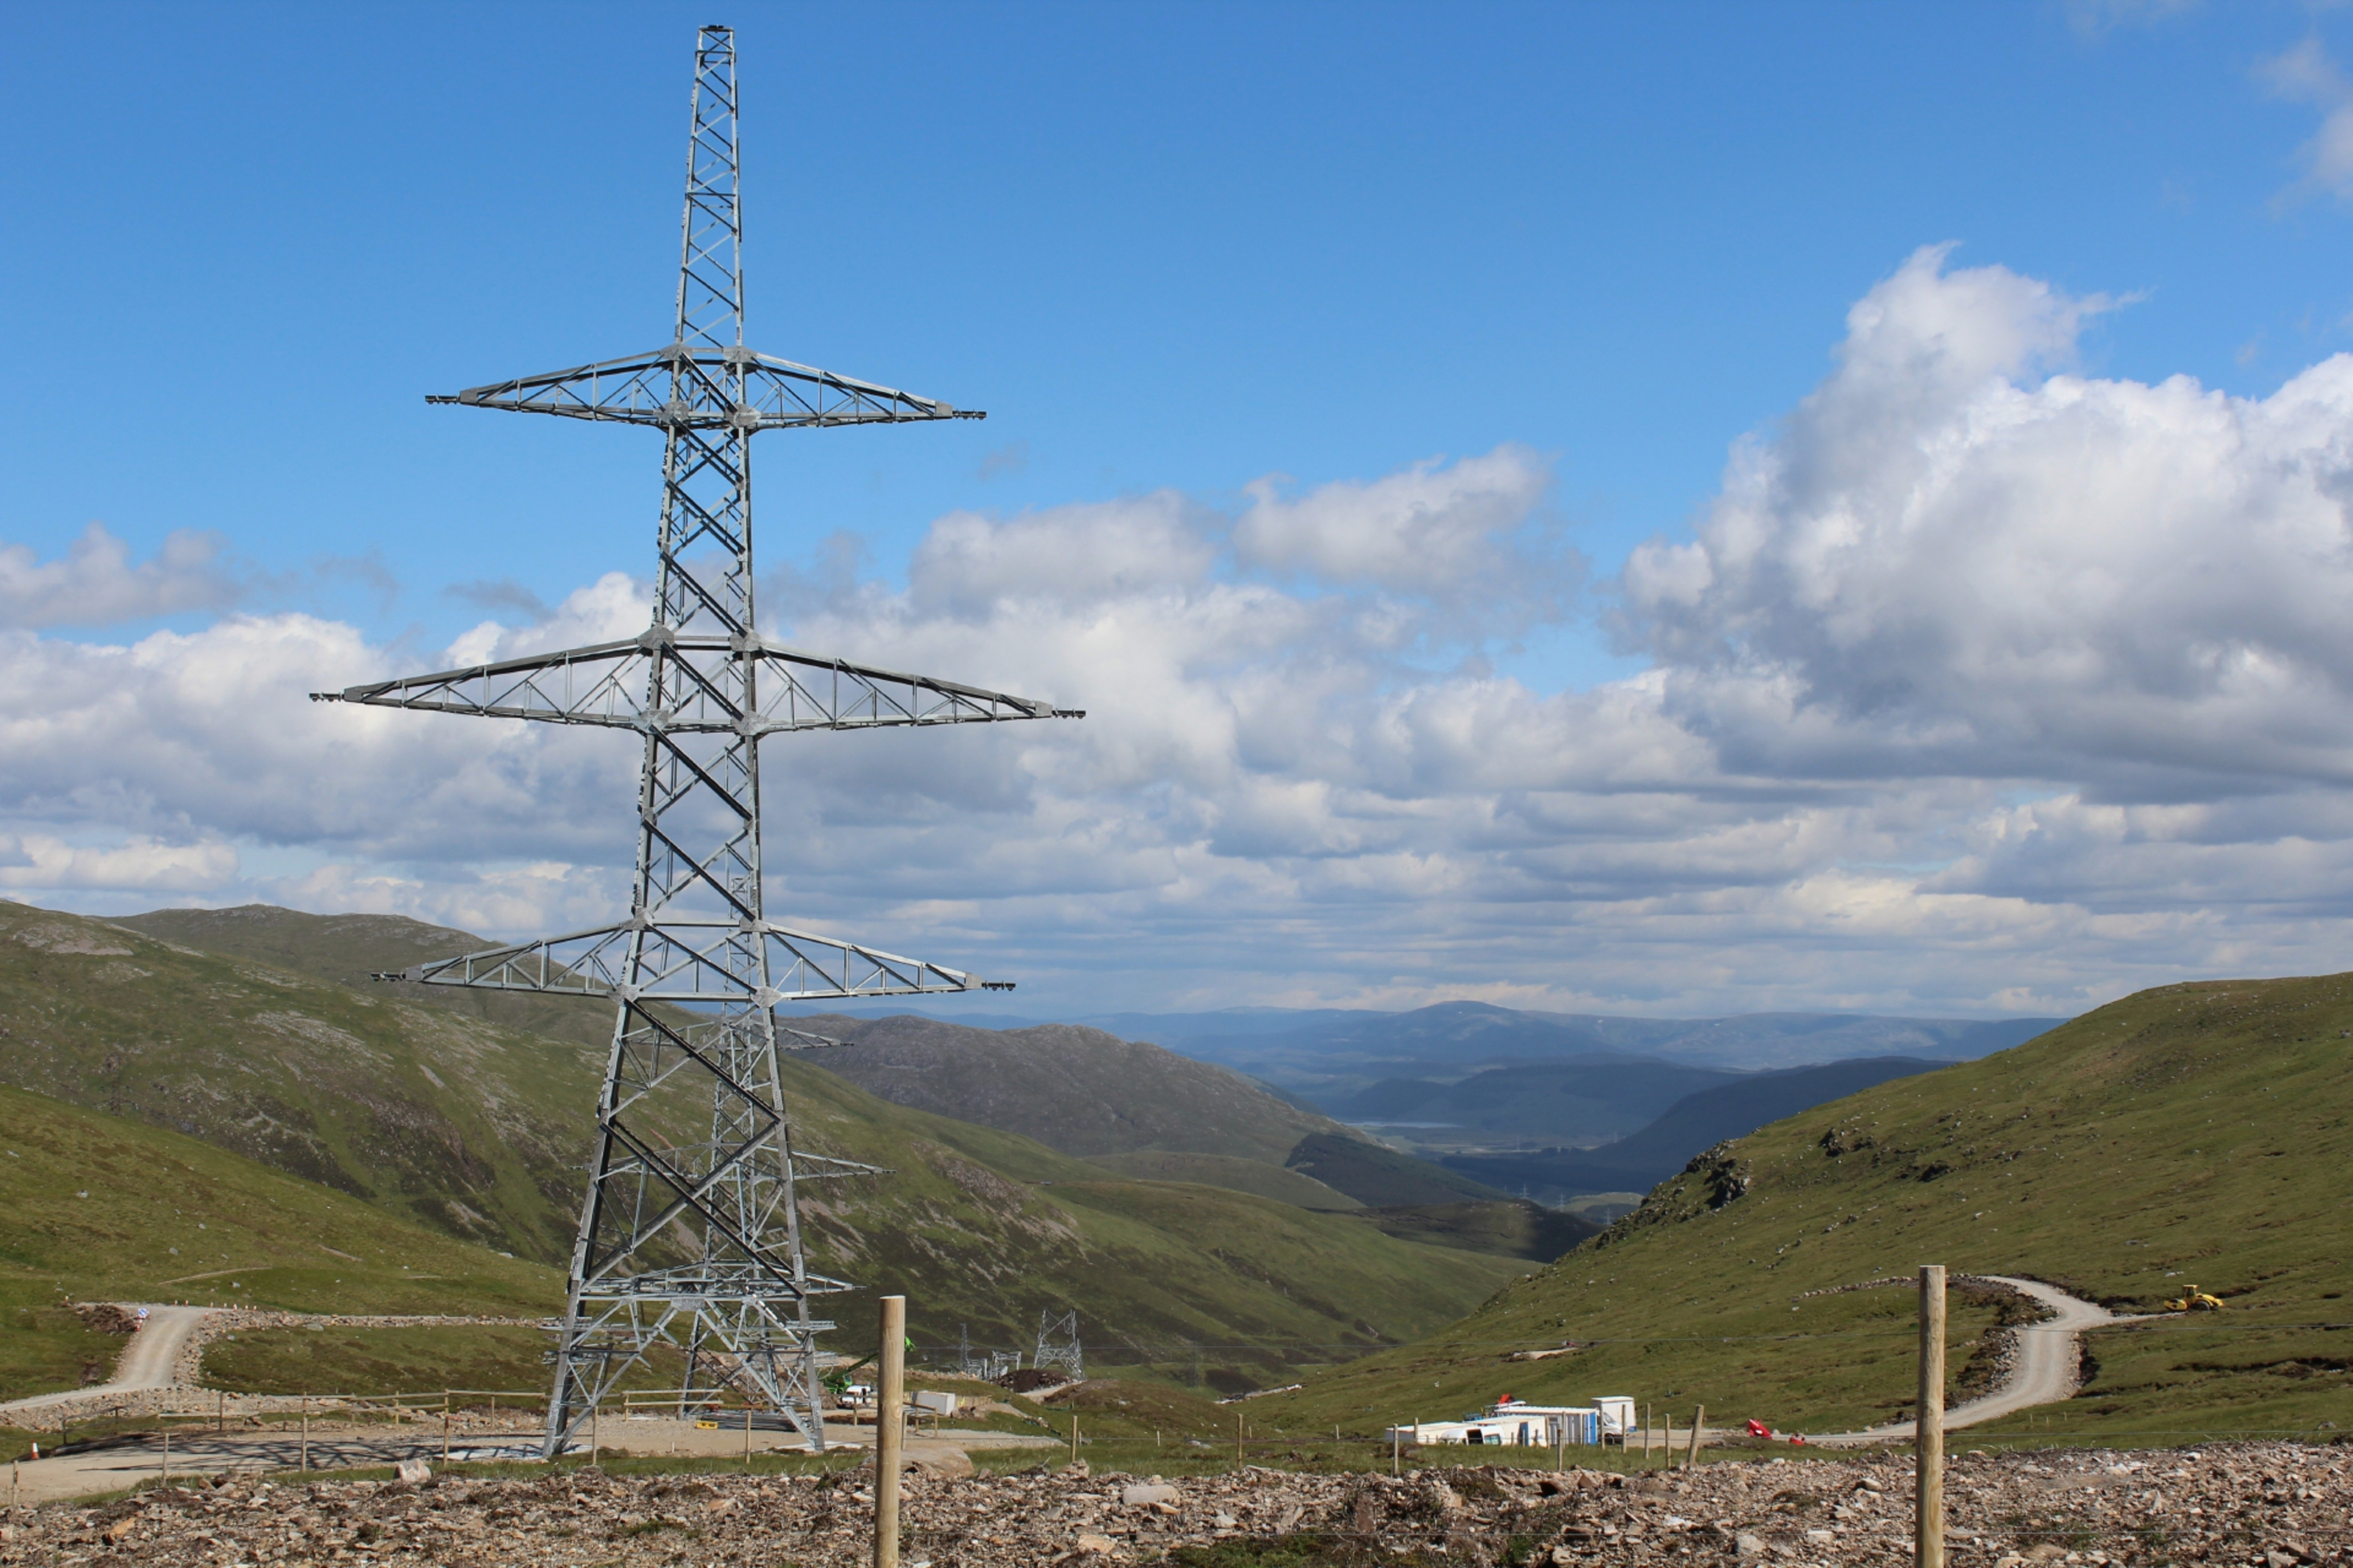 The Beauly to Denny line construction hit all manner of milestones, including that of the highest elevated transmission tower in the UK, situated on the Corrieyairack Pass.